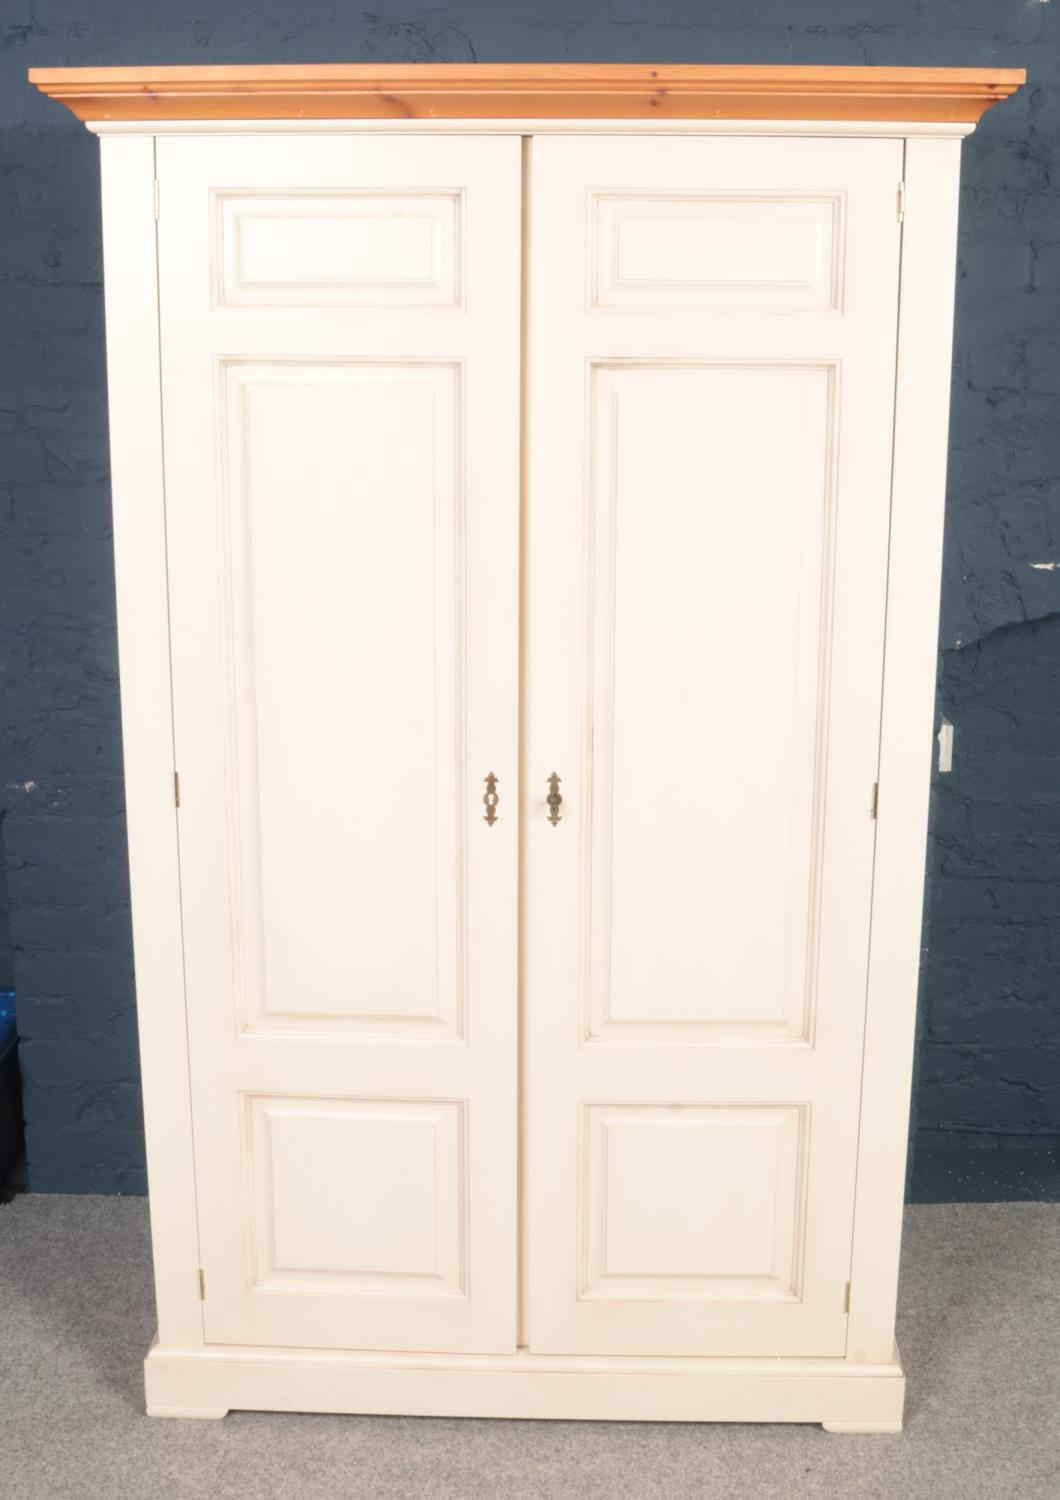 A Barker and Stonehouse modern painted two-door wardrobe . H:198cm,W:112.5cm, D:55cm. Condition